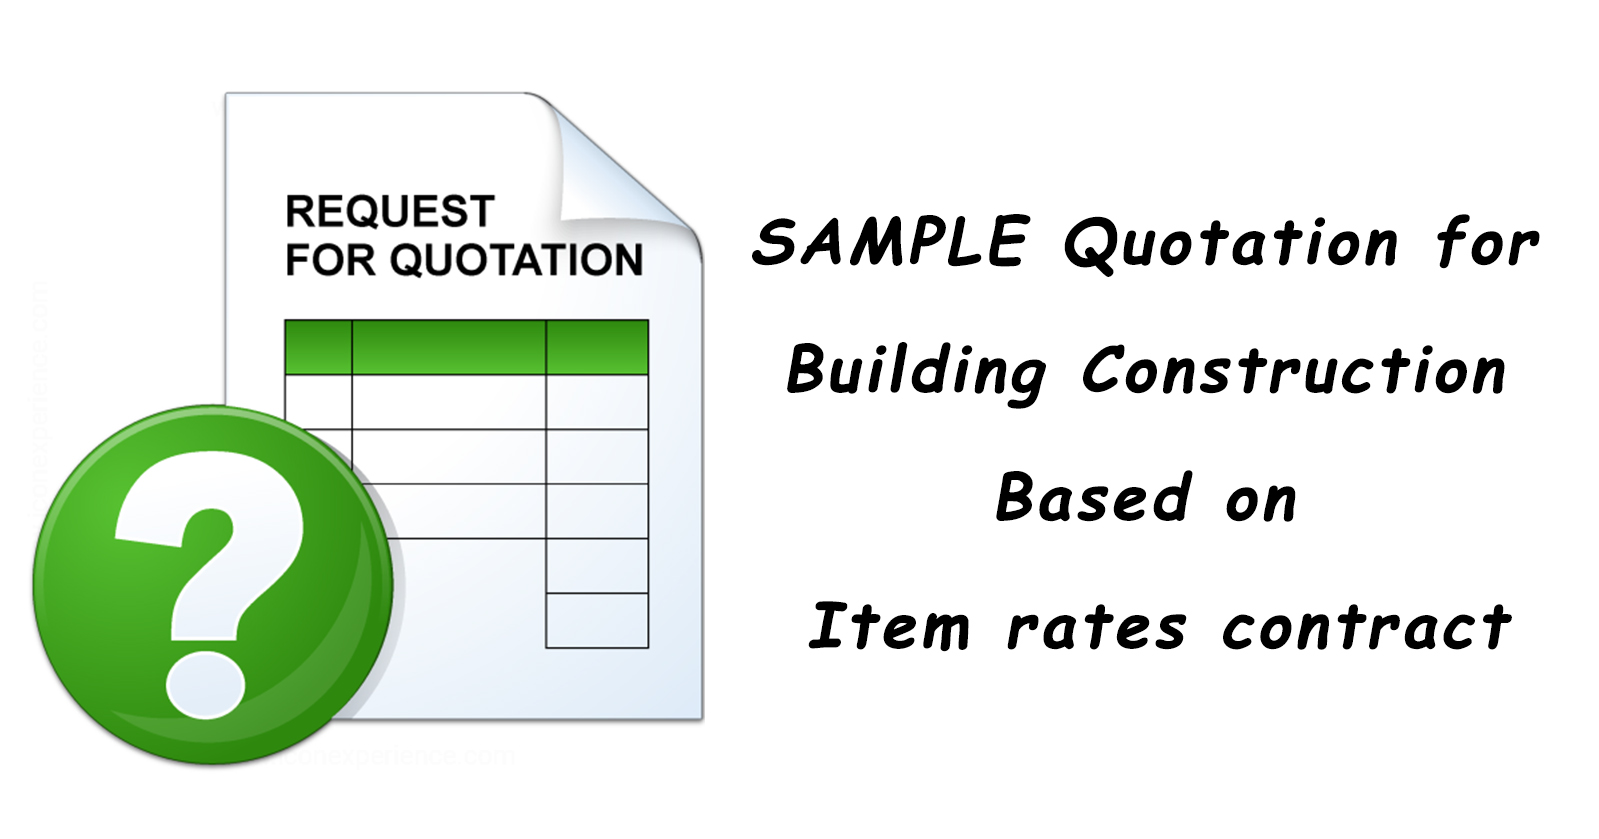 SAMPLE Quotation For Building Construction Based On Item Rates Contract